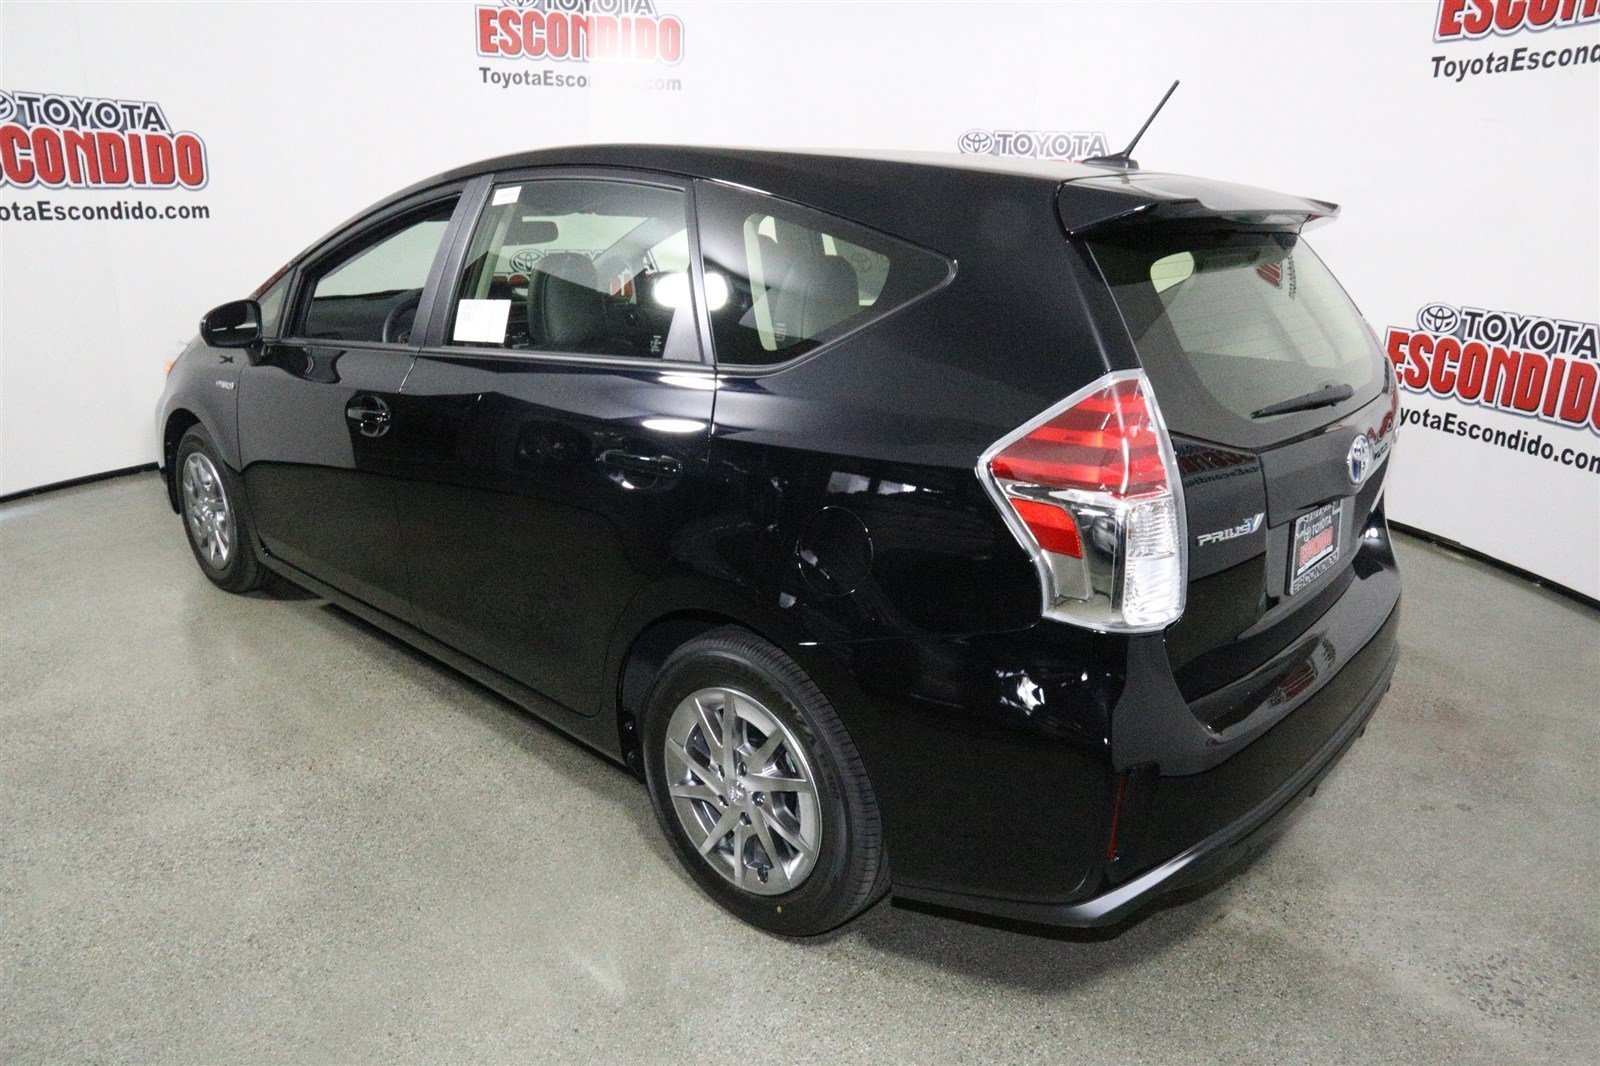 new 2017 toyota prius v four station wagon in escondido hj063364 toyota of escondido. Black Bedroom Furniture Sets. Home Design Ideas